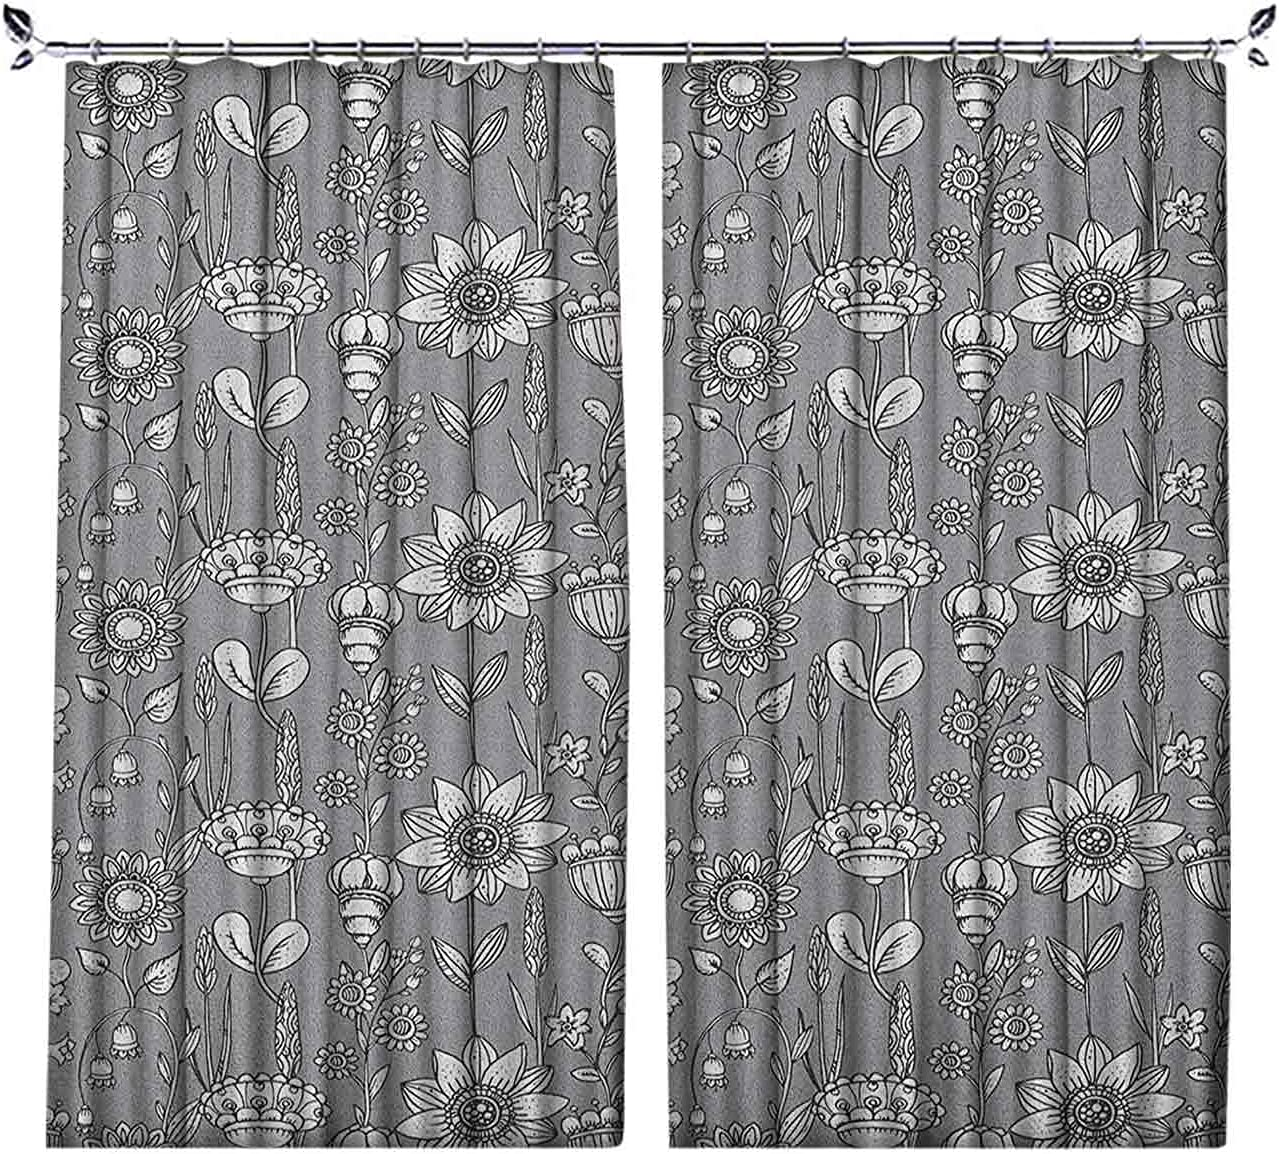 Pinch Pleat Textured Floral Kansas City Outlet ☆ Free Shipping Mall Flower Greyscale Fantastic Curtains